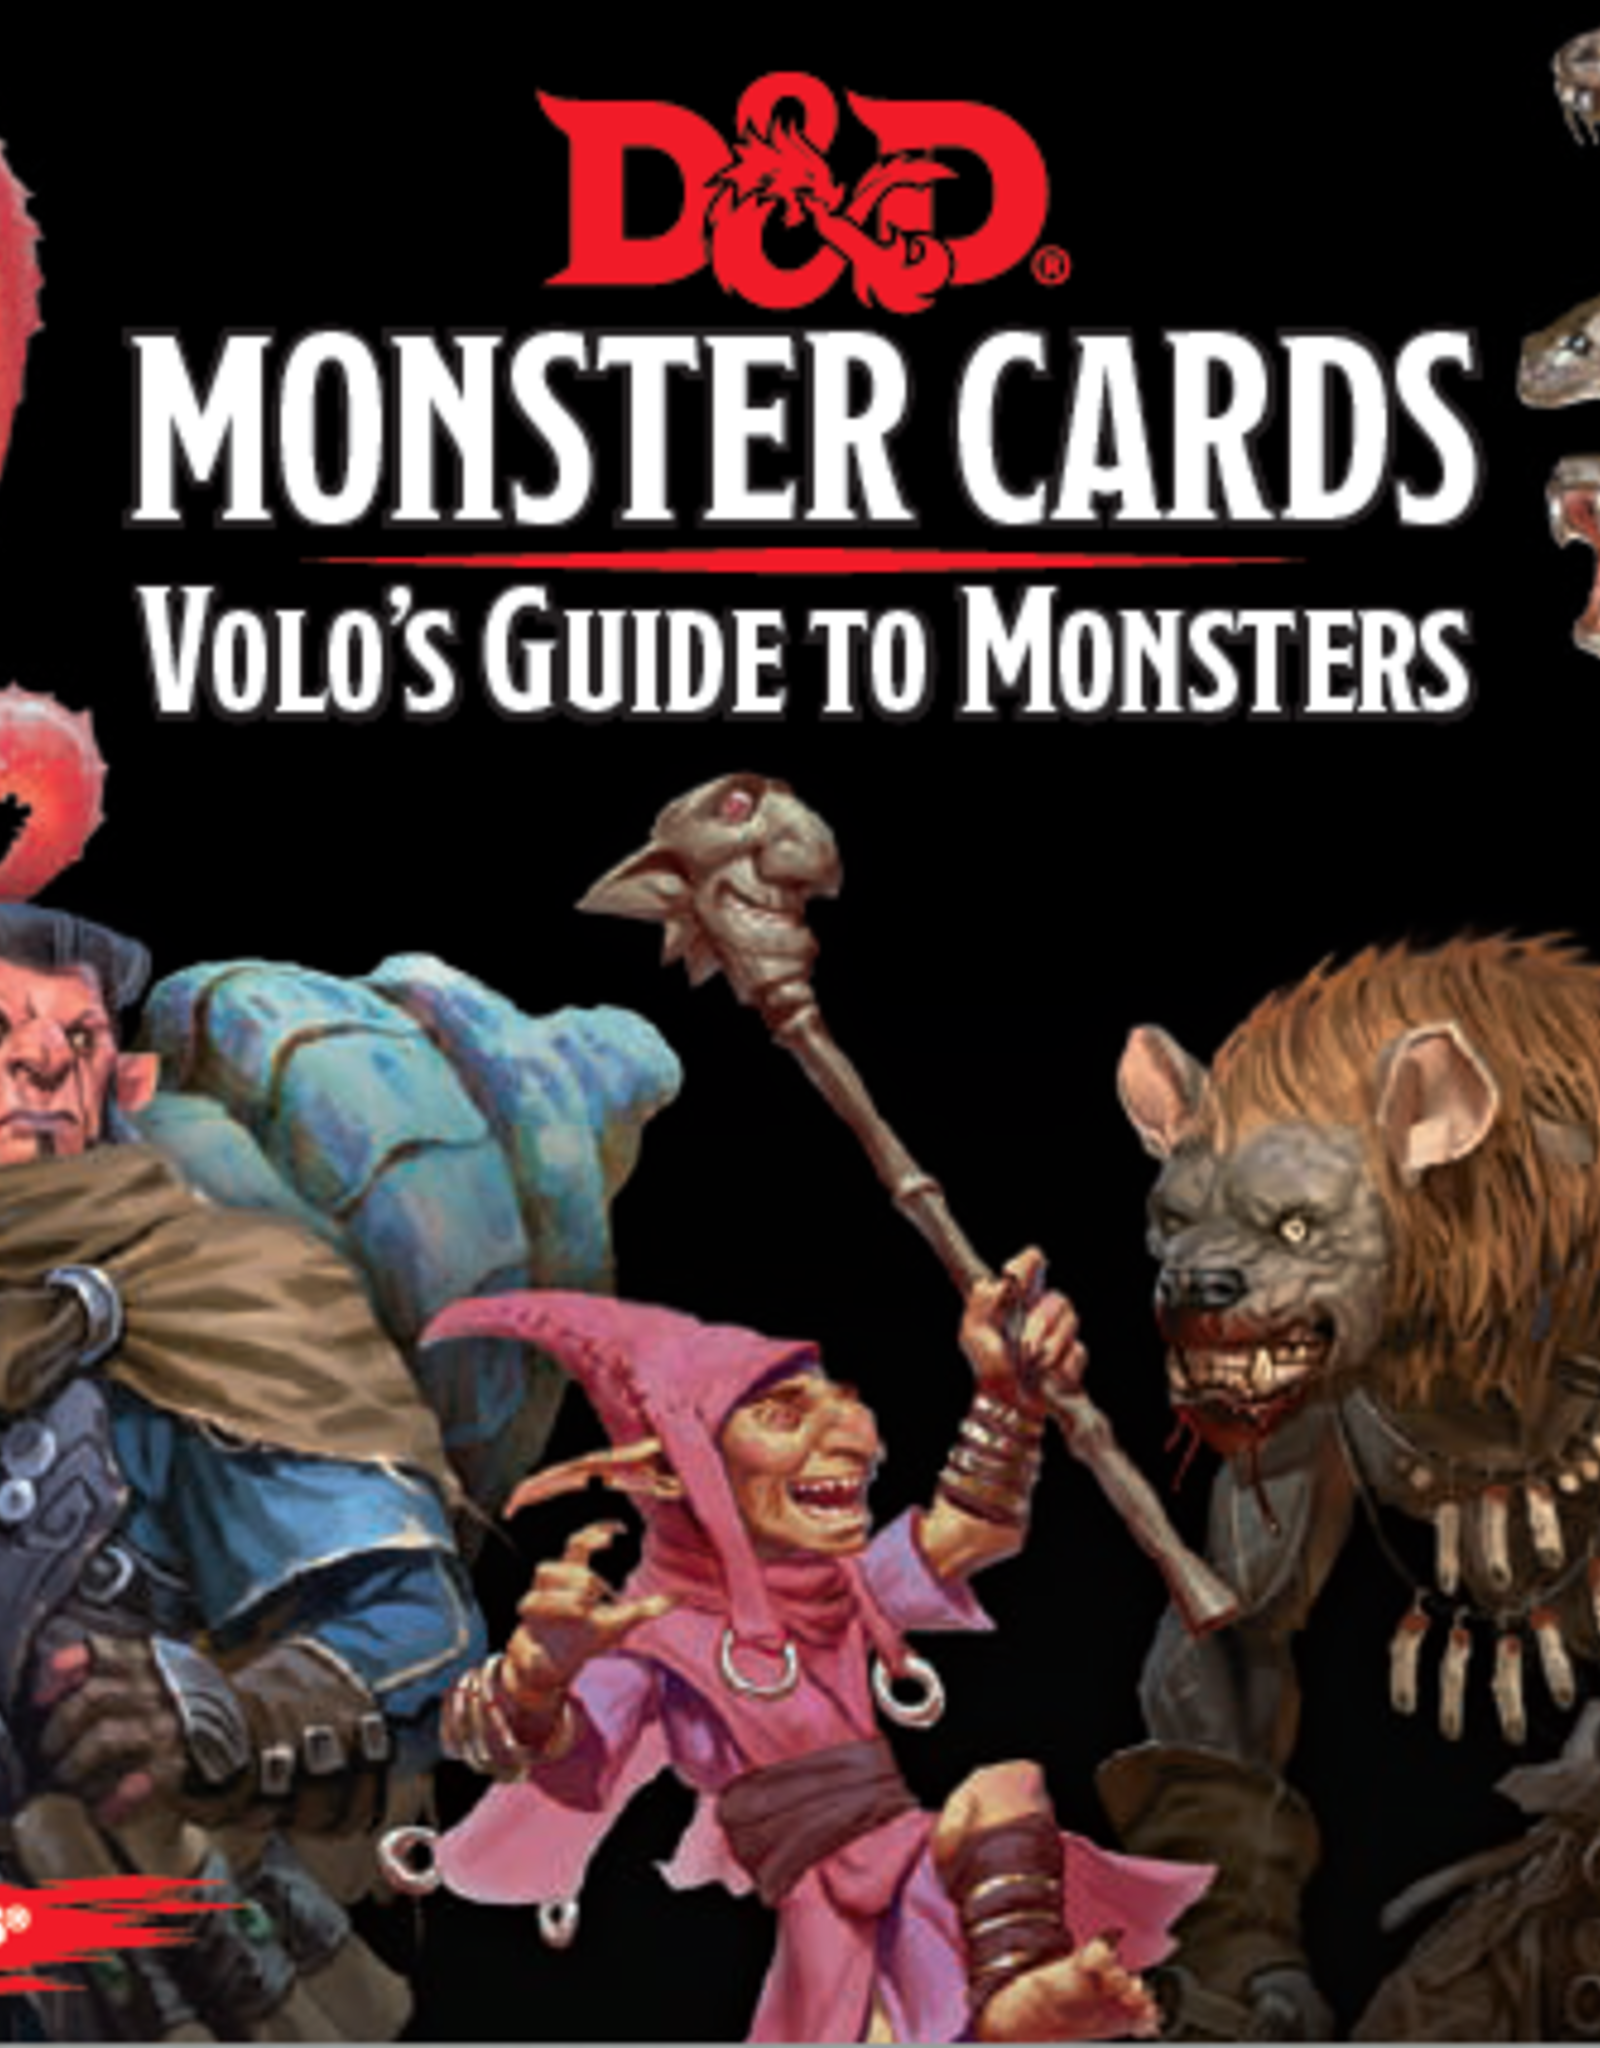 Wizards of the Coast D&D Monster Cards Volo's Guide to Monsters